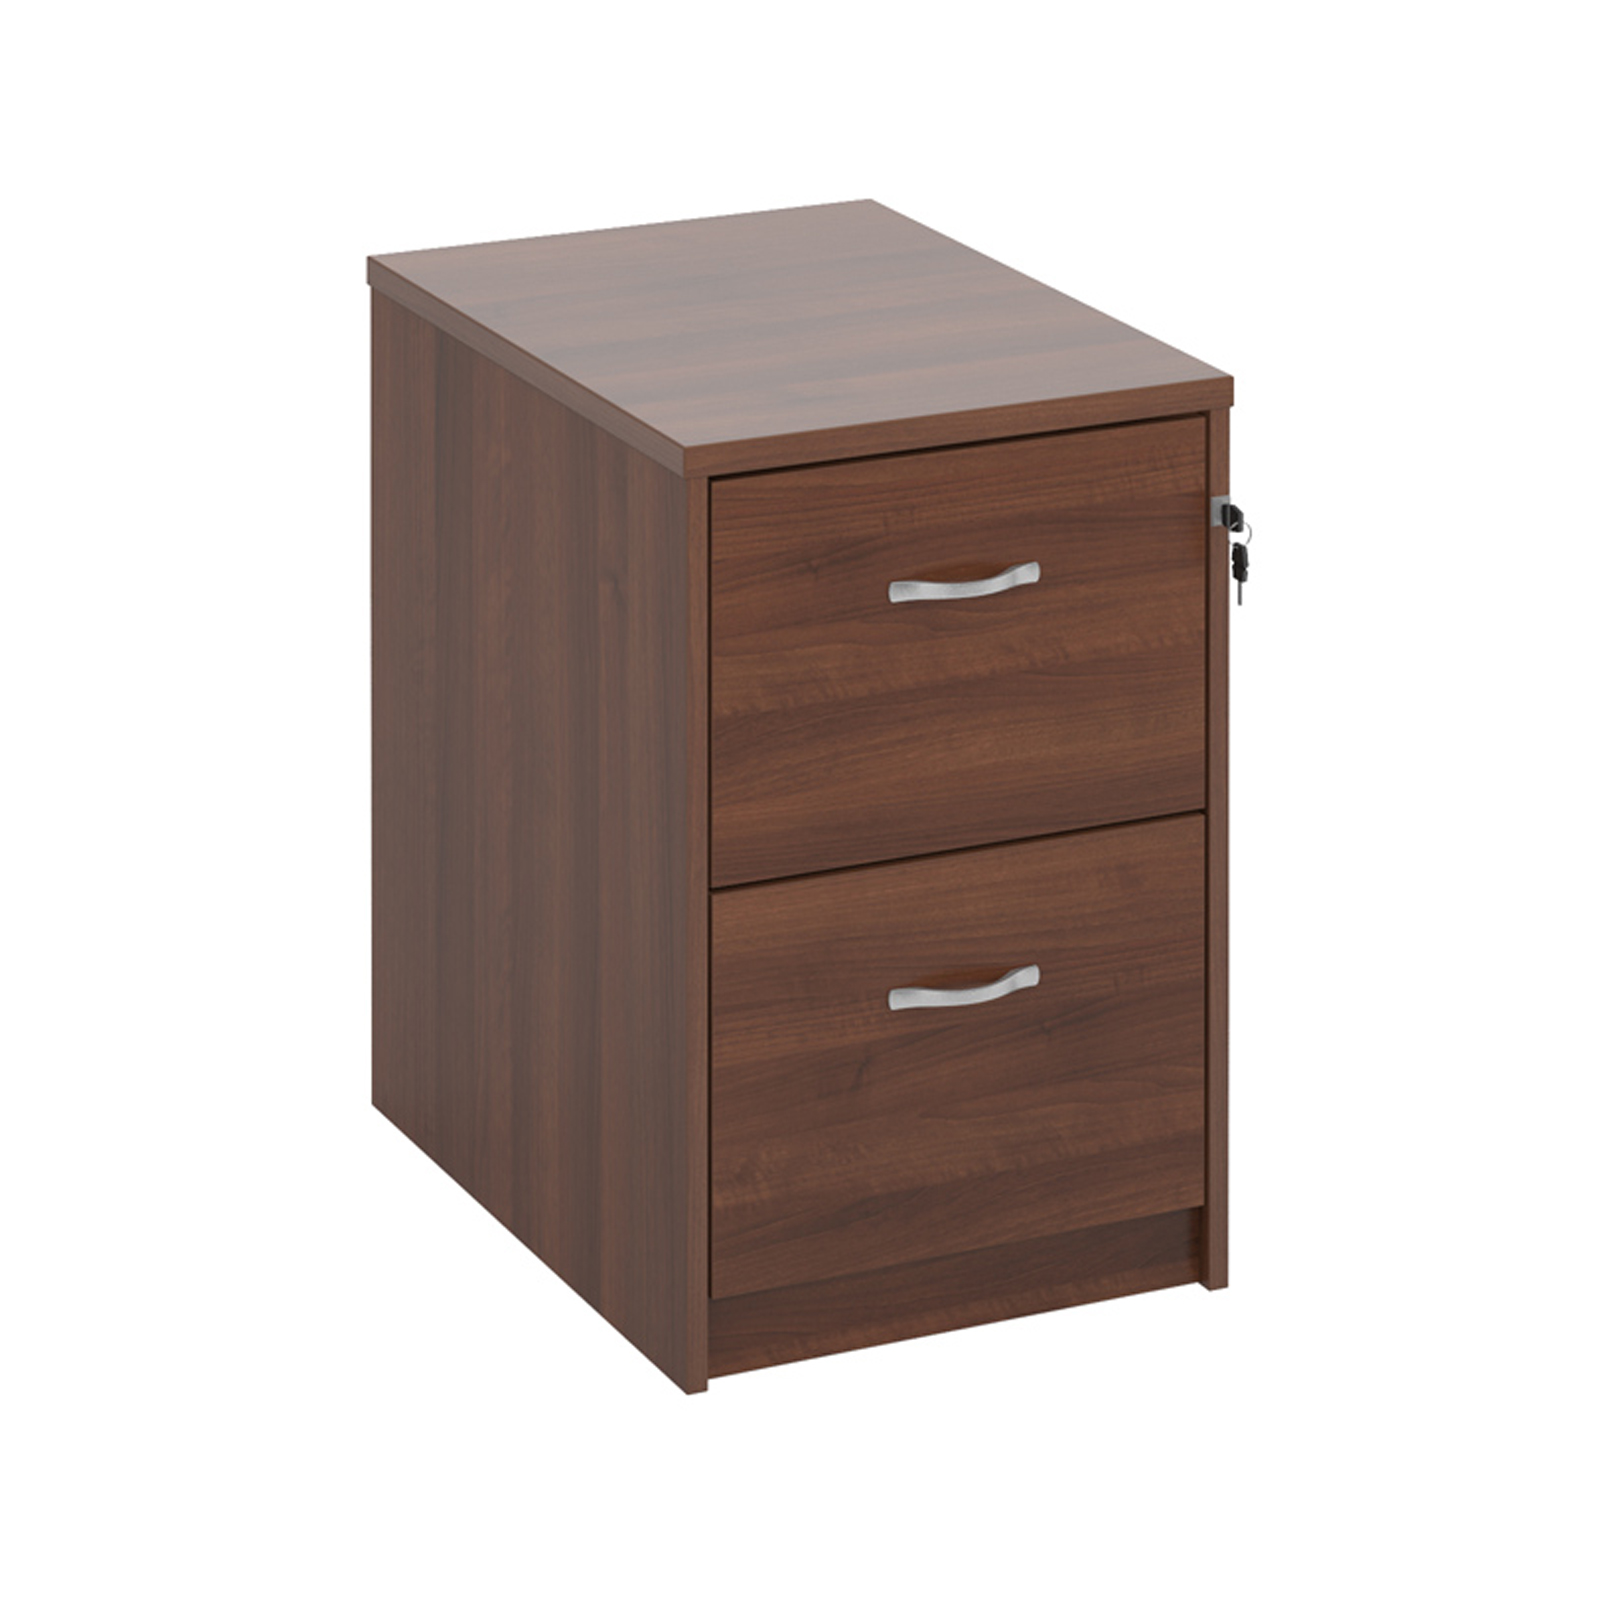 Wooden 2 drawer filing cabinet with silver handles 730mm high - walnut